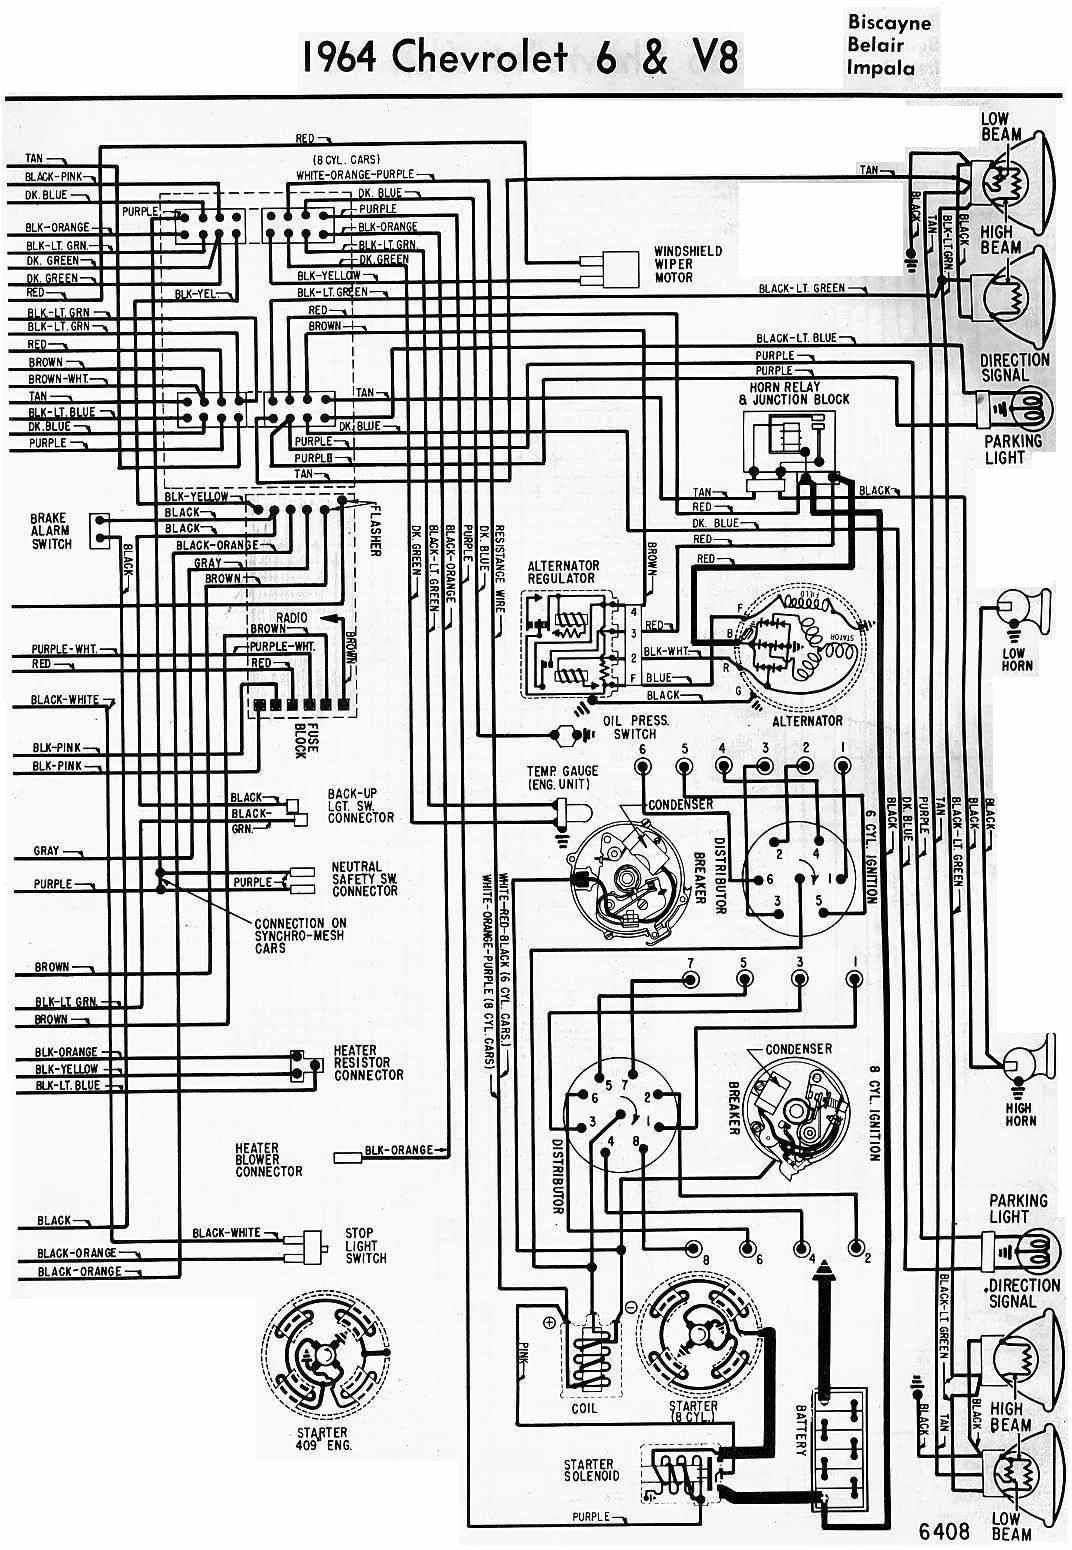 electrical wiring diagram of 1964 chevrolet 6 and v8 all. Black Bedroom Furniture Sets. Home Design Ideas